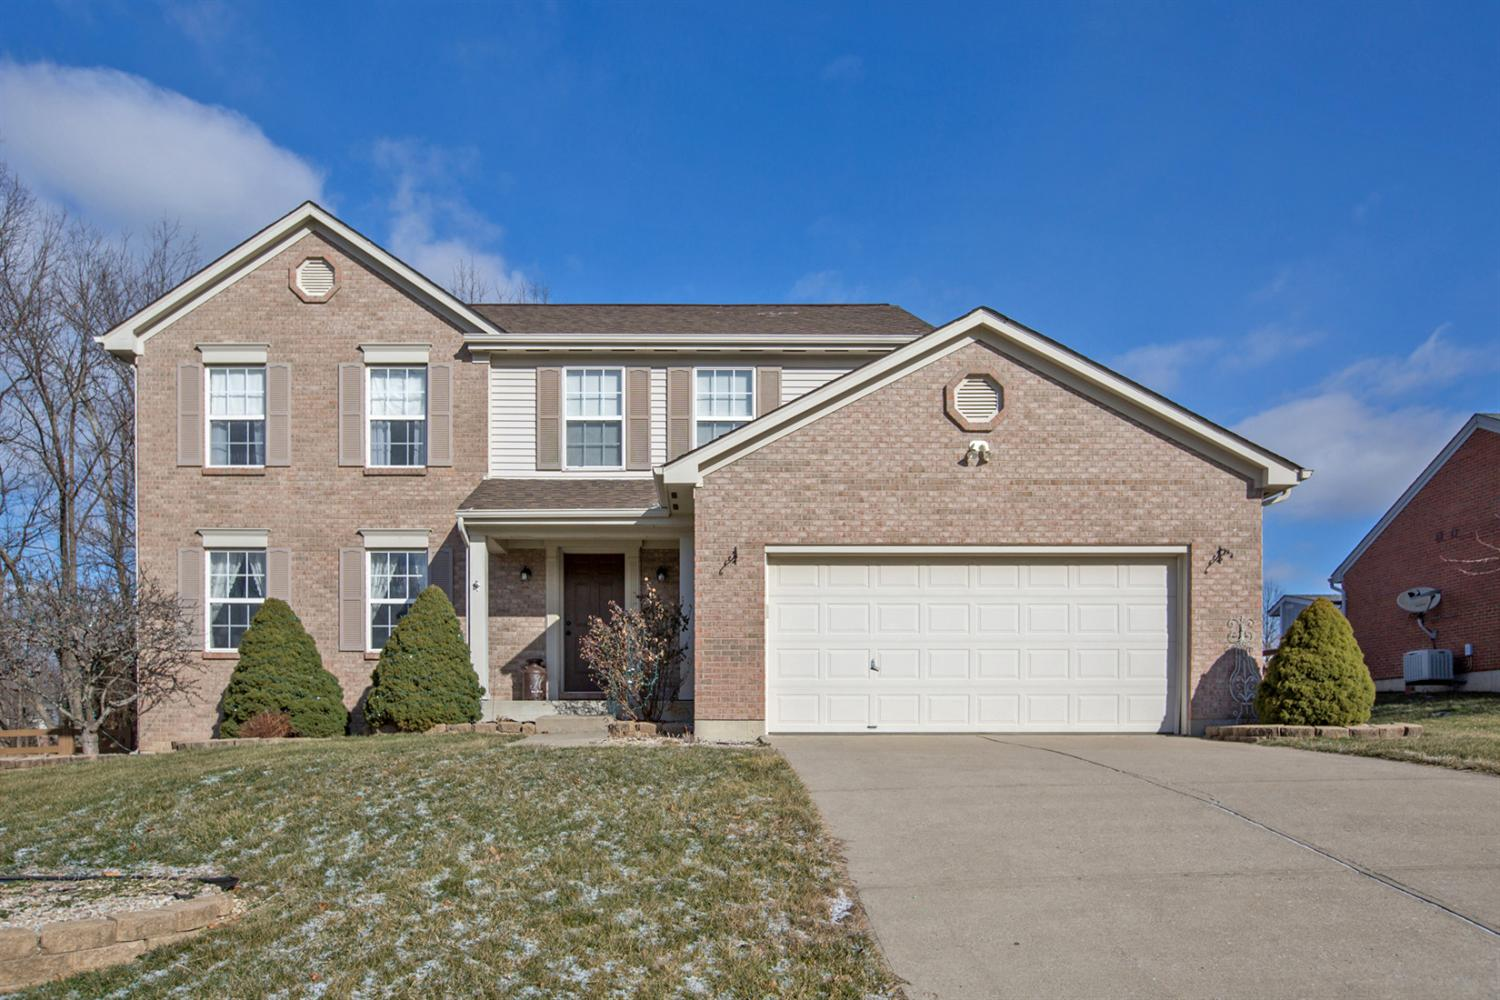 Photo 1 for 2612 Red Sky Ct Burlington, KY 41005